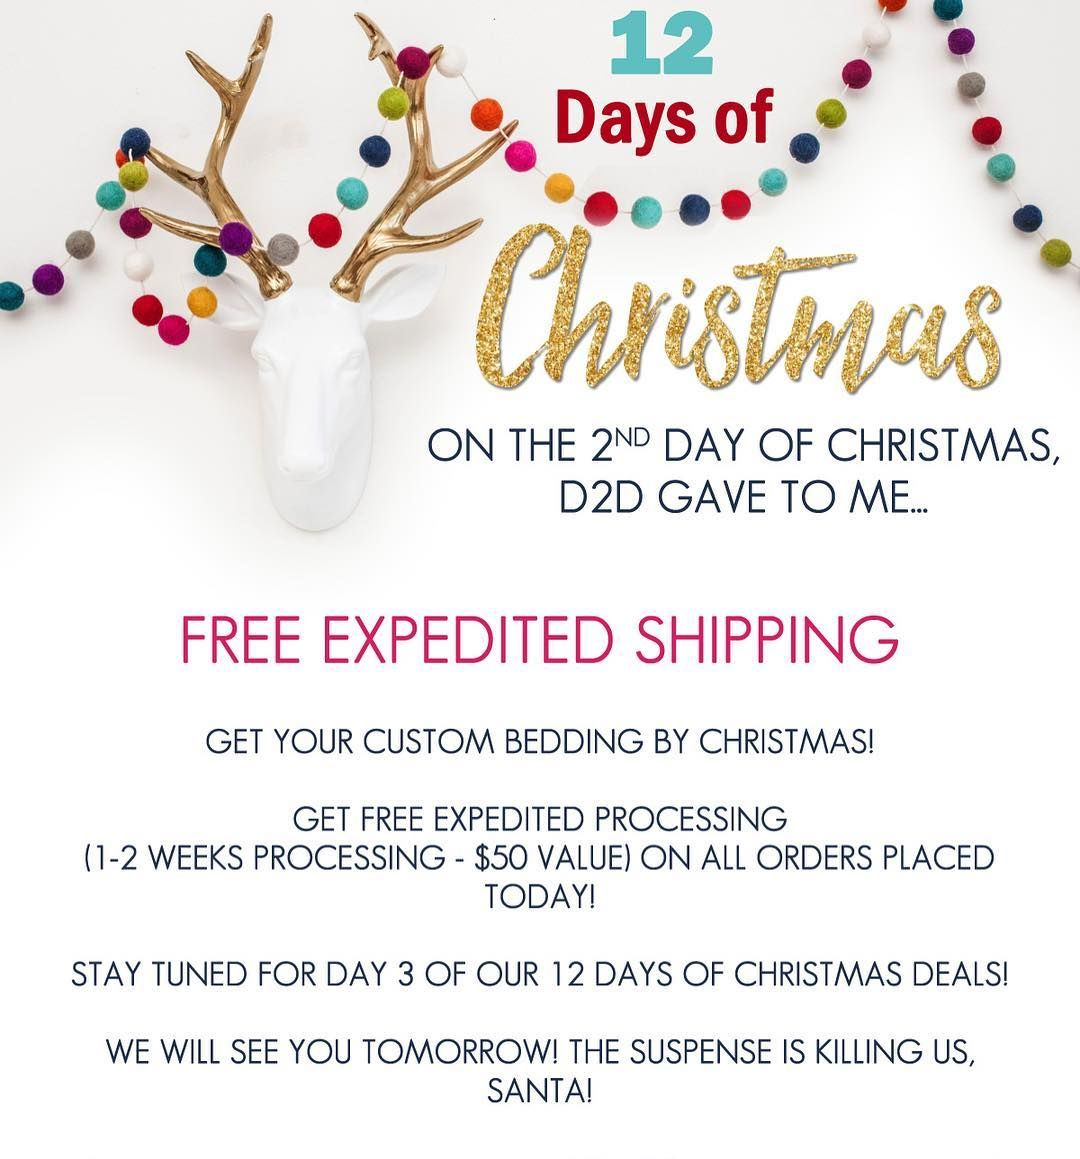 On the 2nd day of Christmas.... Santa gave to YOU - FREE EXPEDITED ...